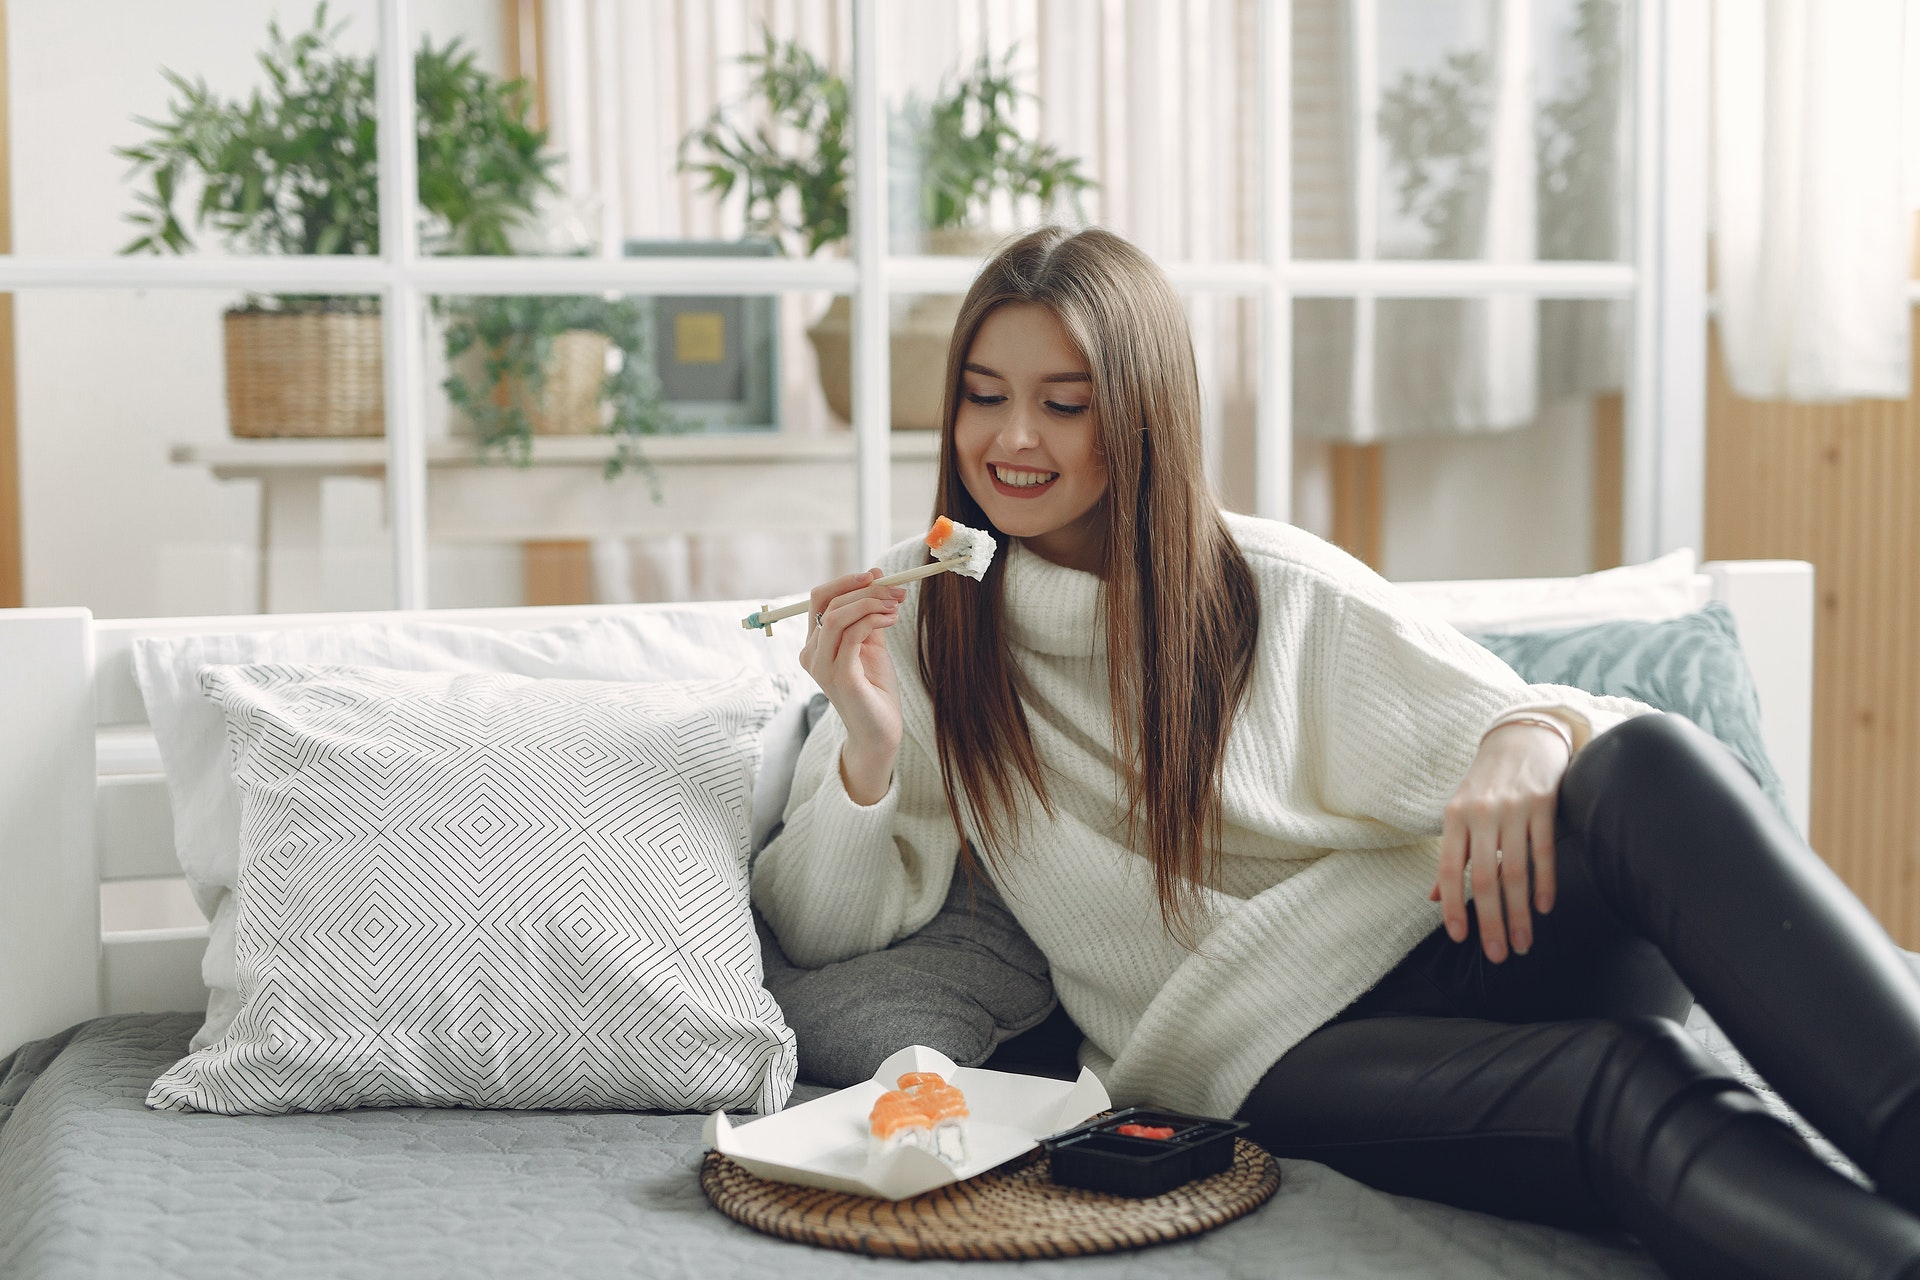 cheerful-young-woman-eating-sushi-at-home-4173302